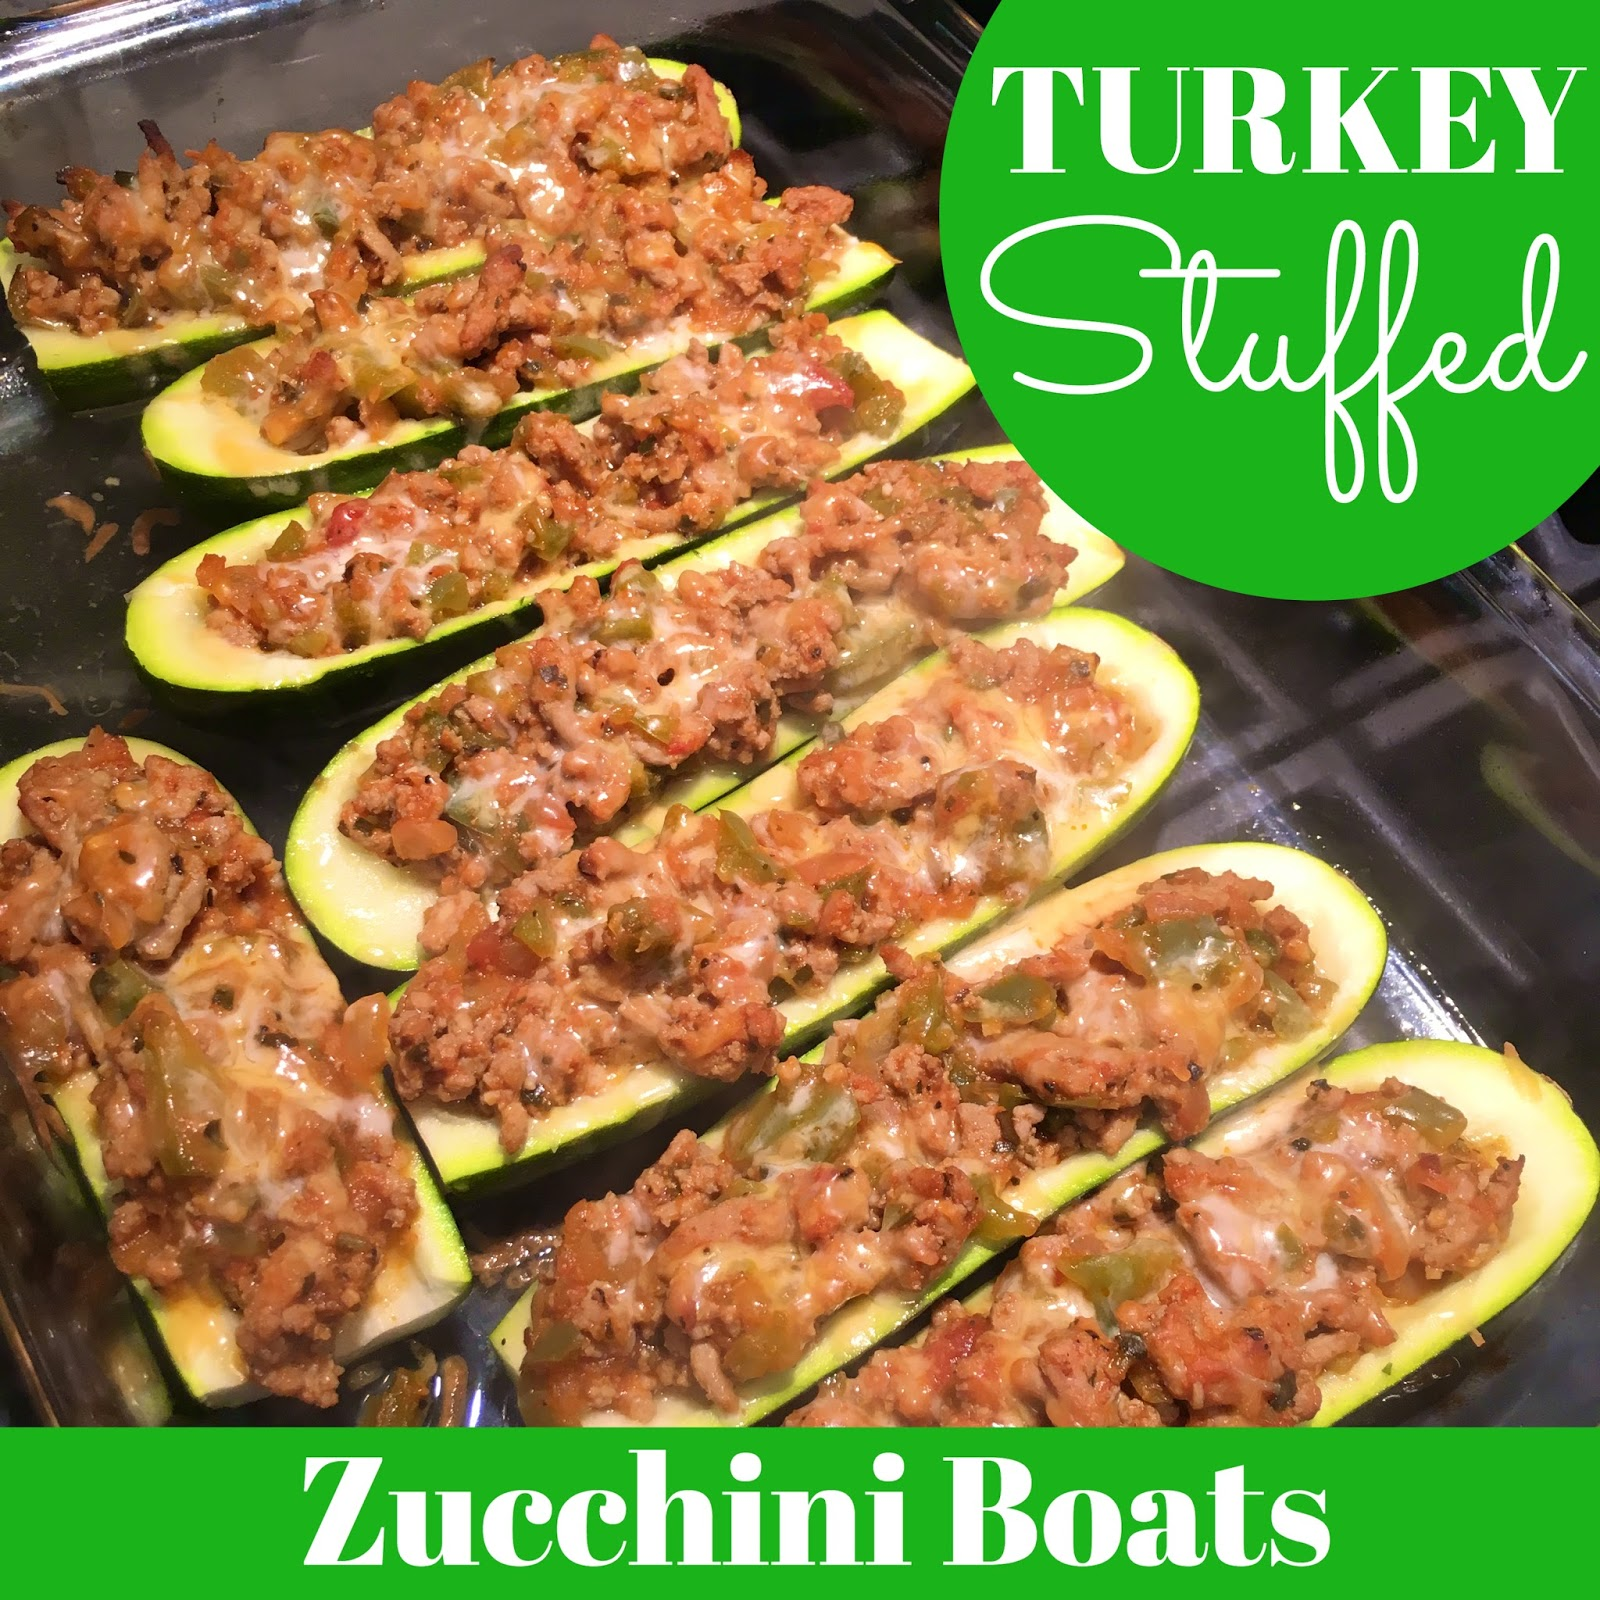 The Healthy RN Turkey Stuffed Zucchini Boats